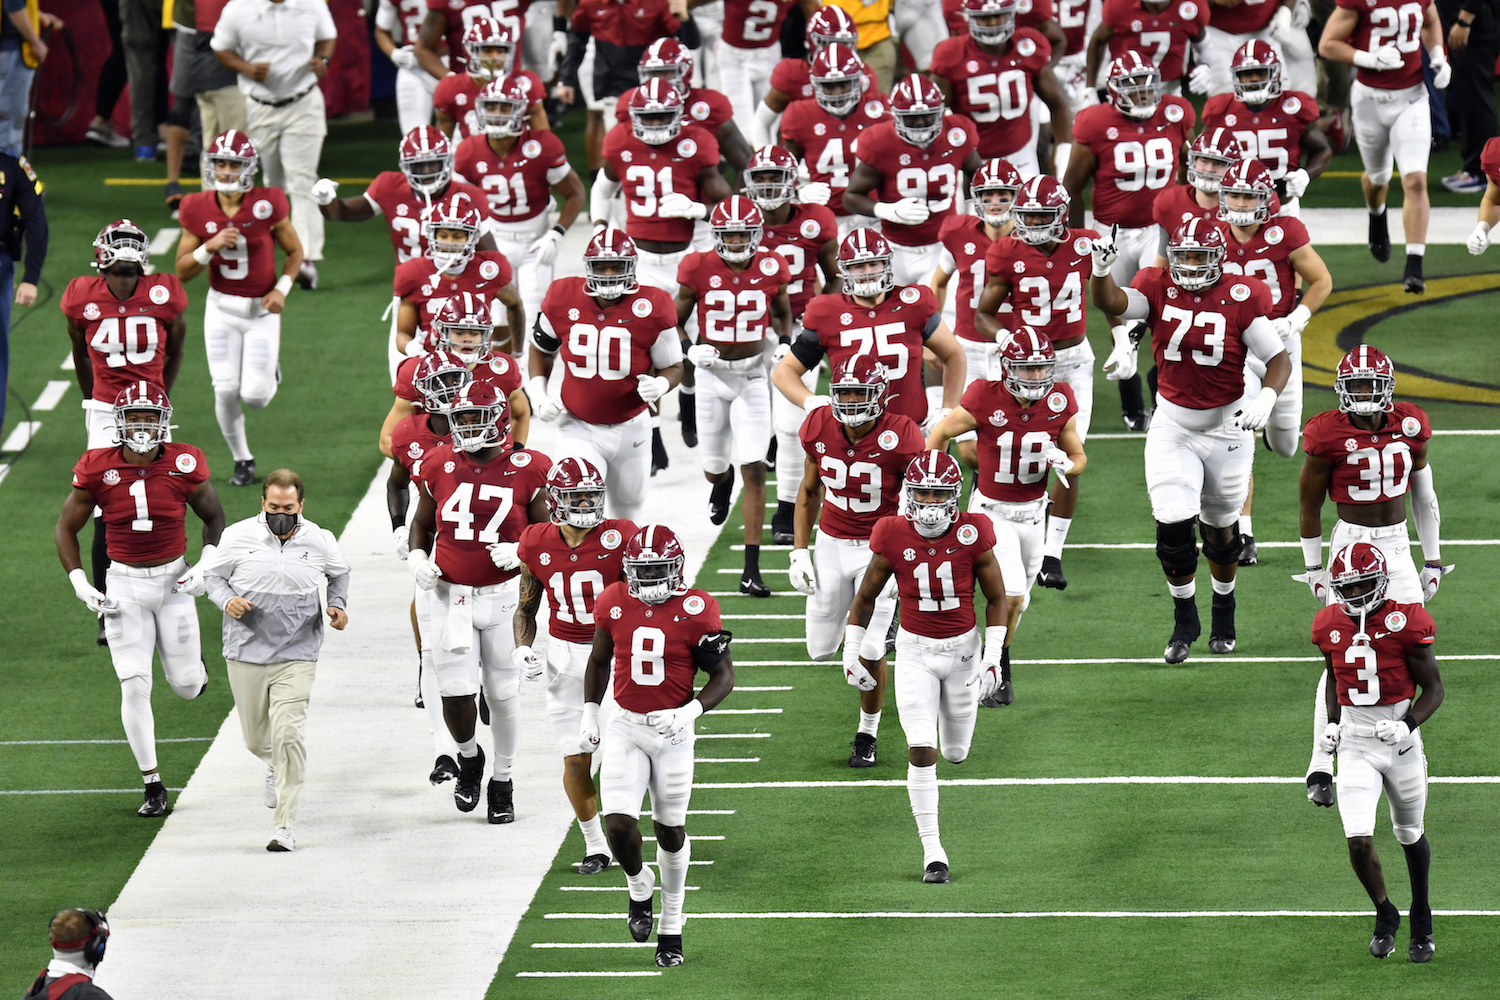 AHow did the Alabama Crimson Tide get their colorful name?